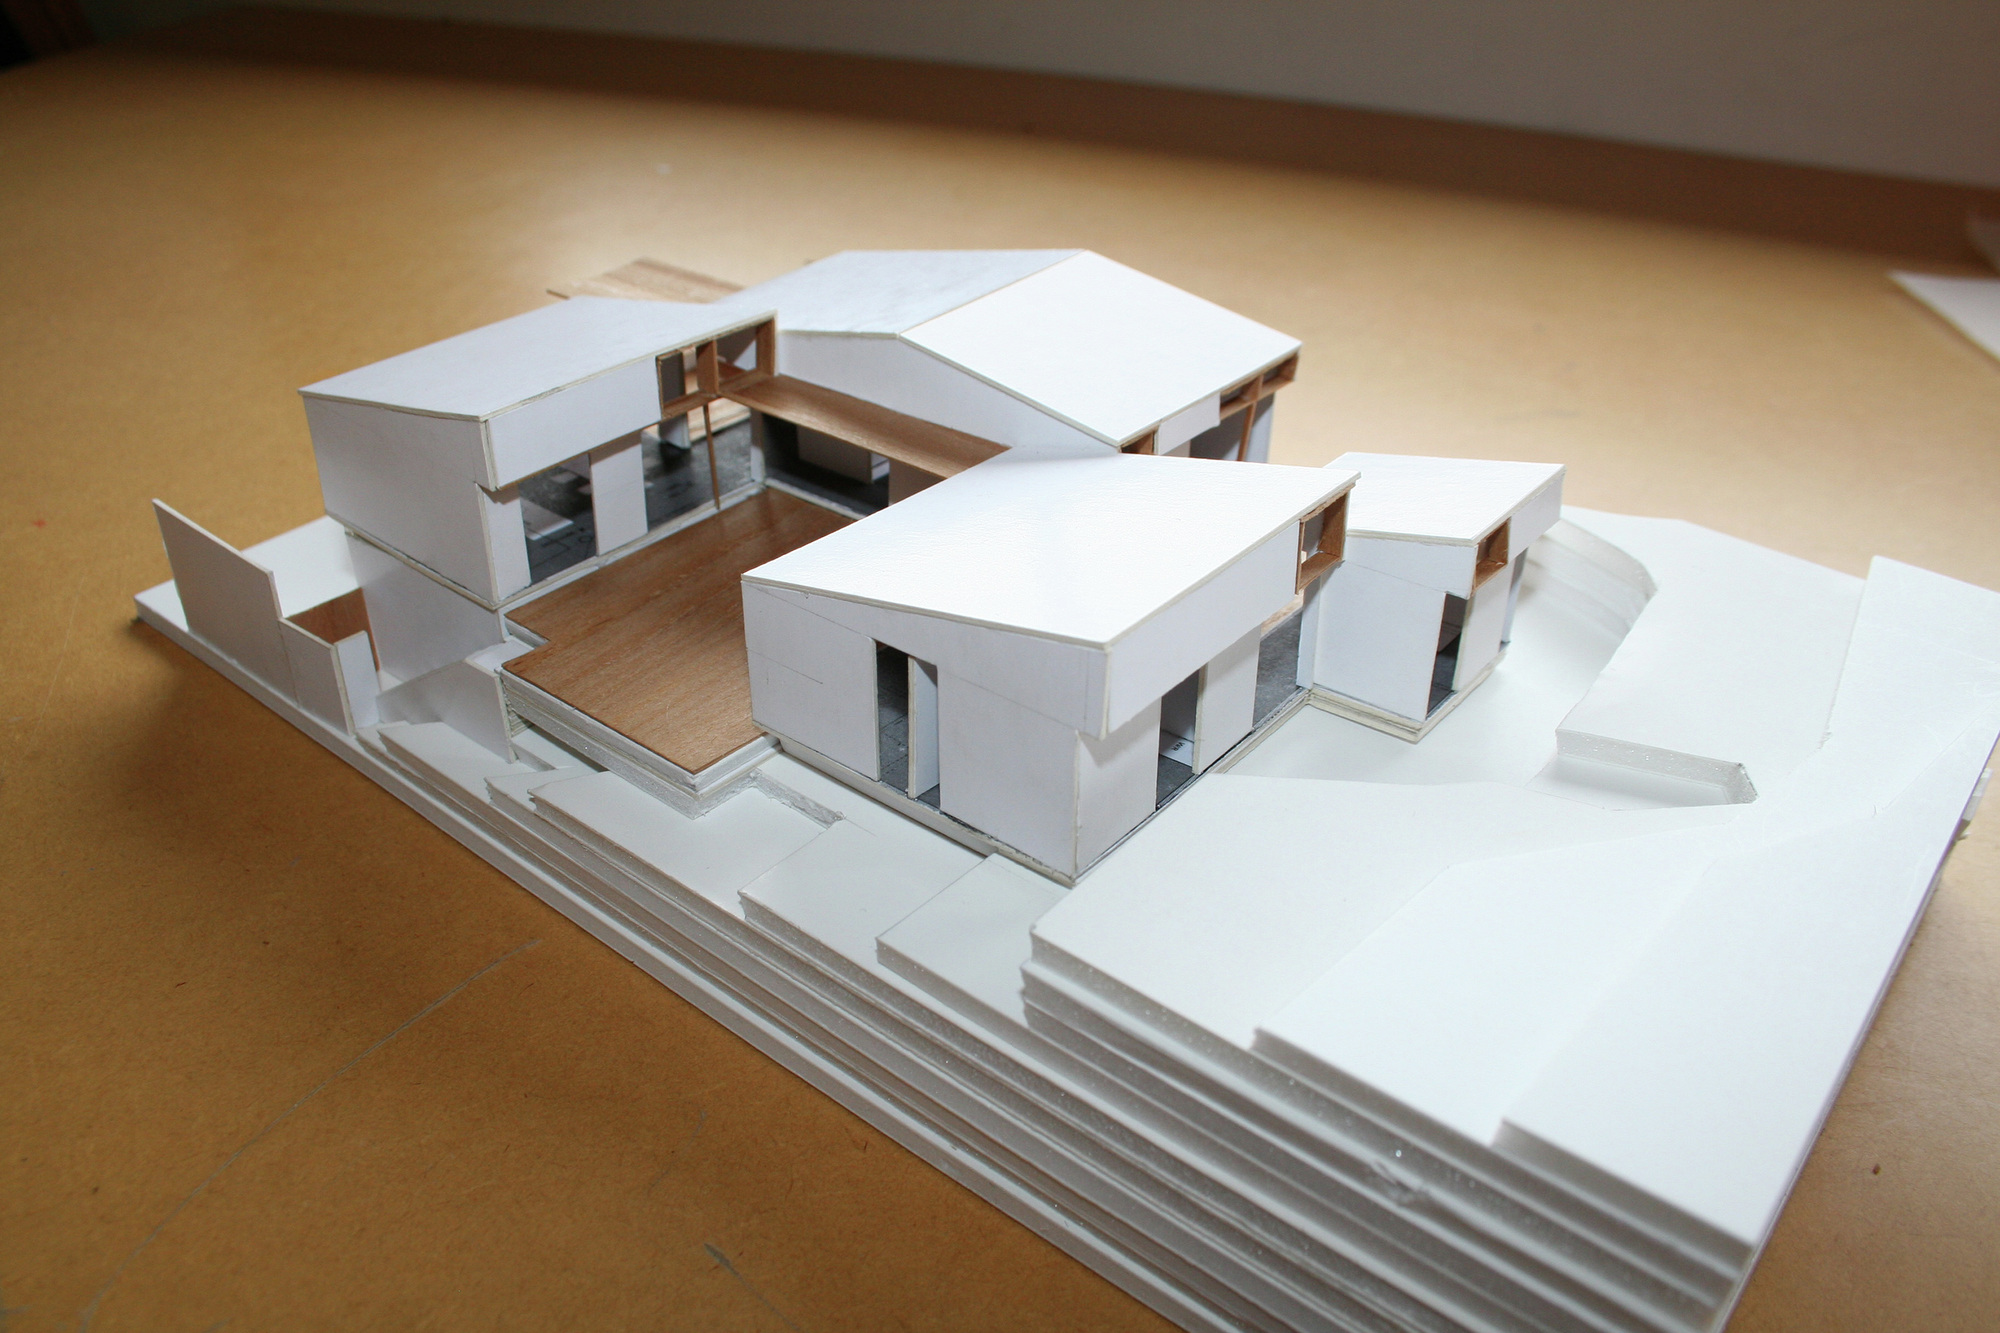 Architecture House Model gallery of offset shed house / irving smith jack architects - 18